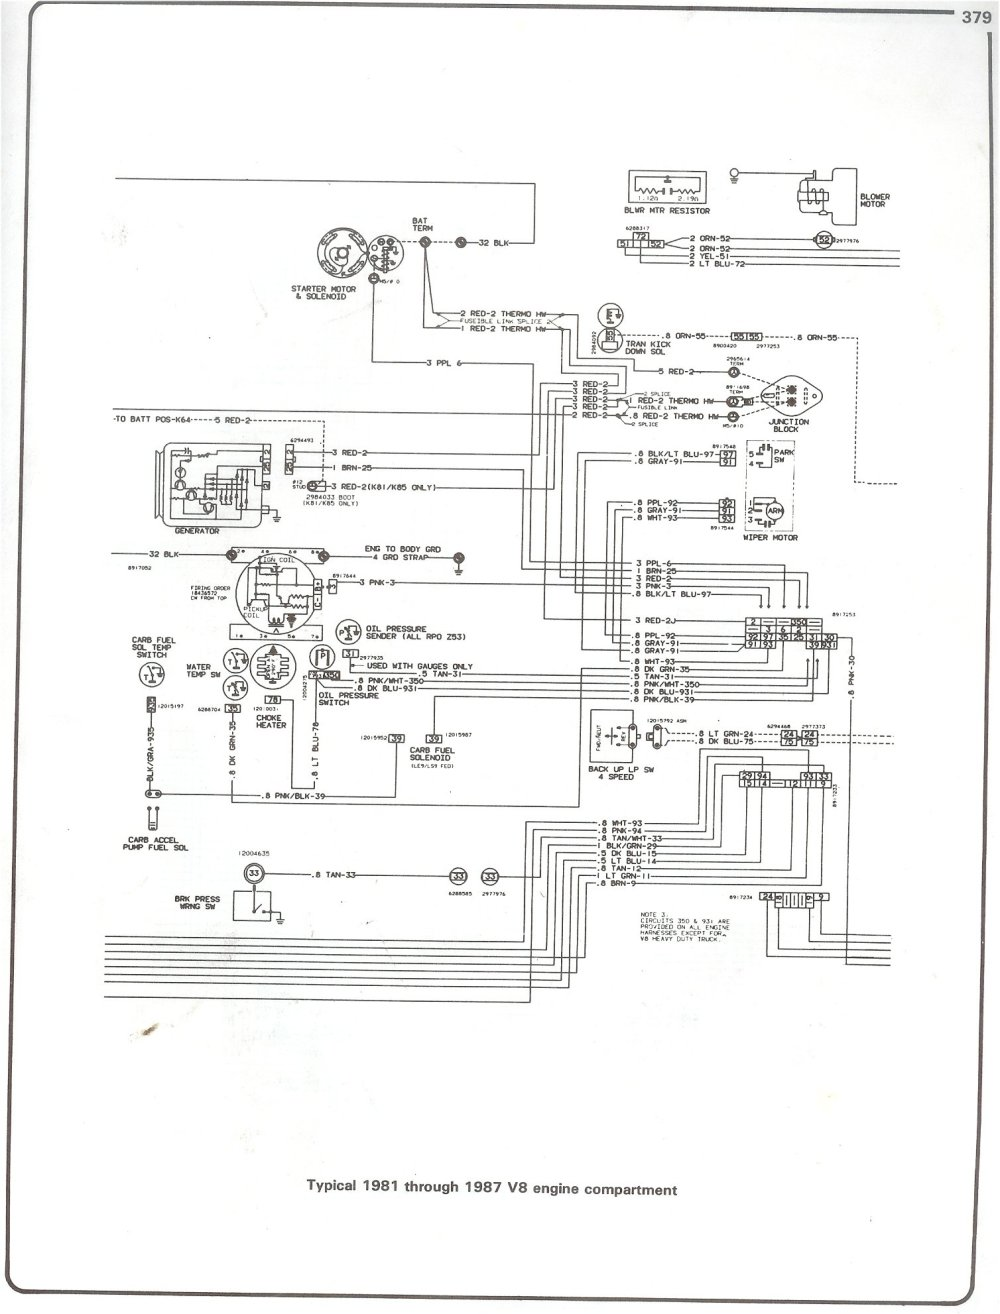 medium resolution of 1984 k10 rear wiring harness wiring diagram explained gmc truck wiring diagrams 87 s10 wiring harness diagram